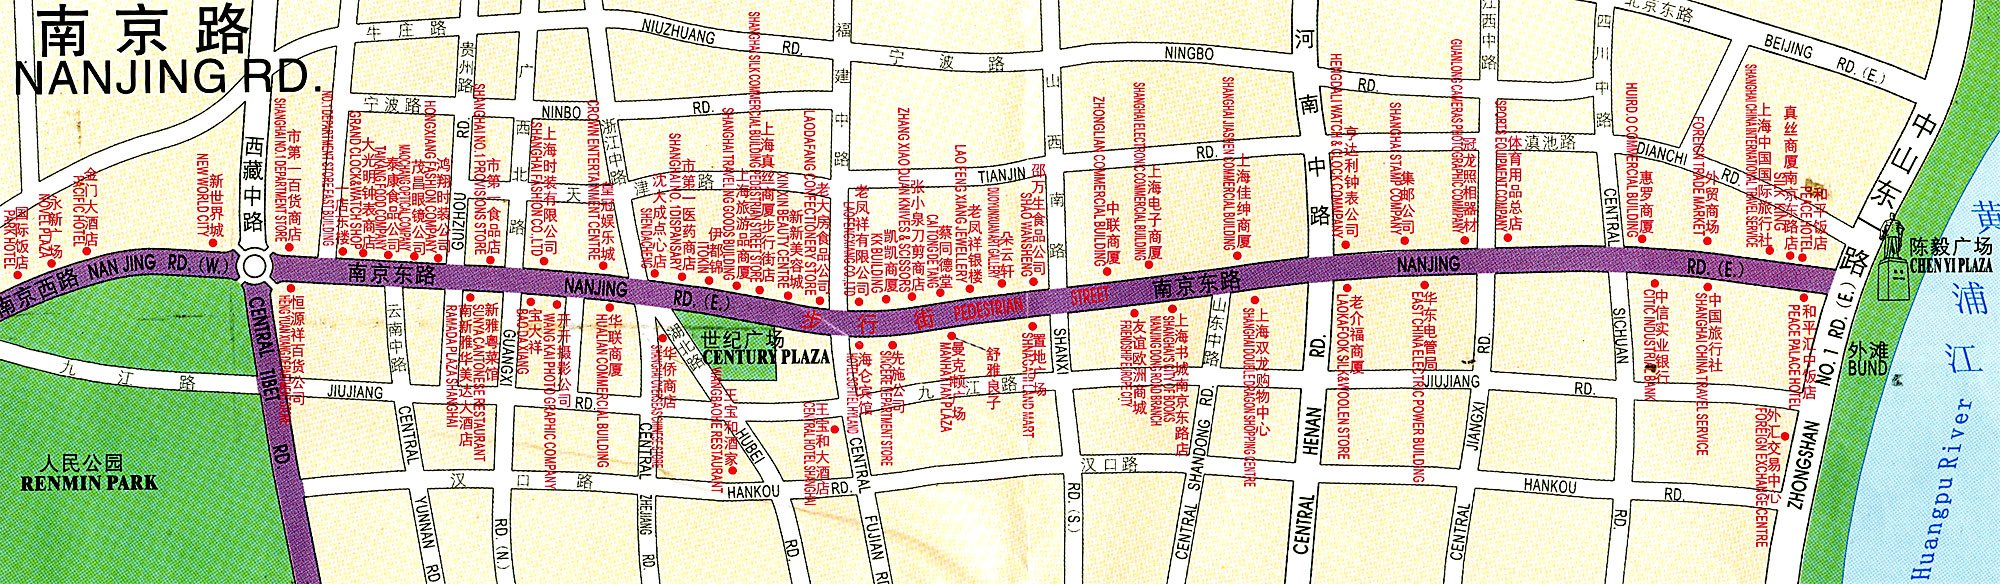 Shanghai Nanjing Road Map